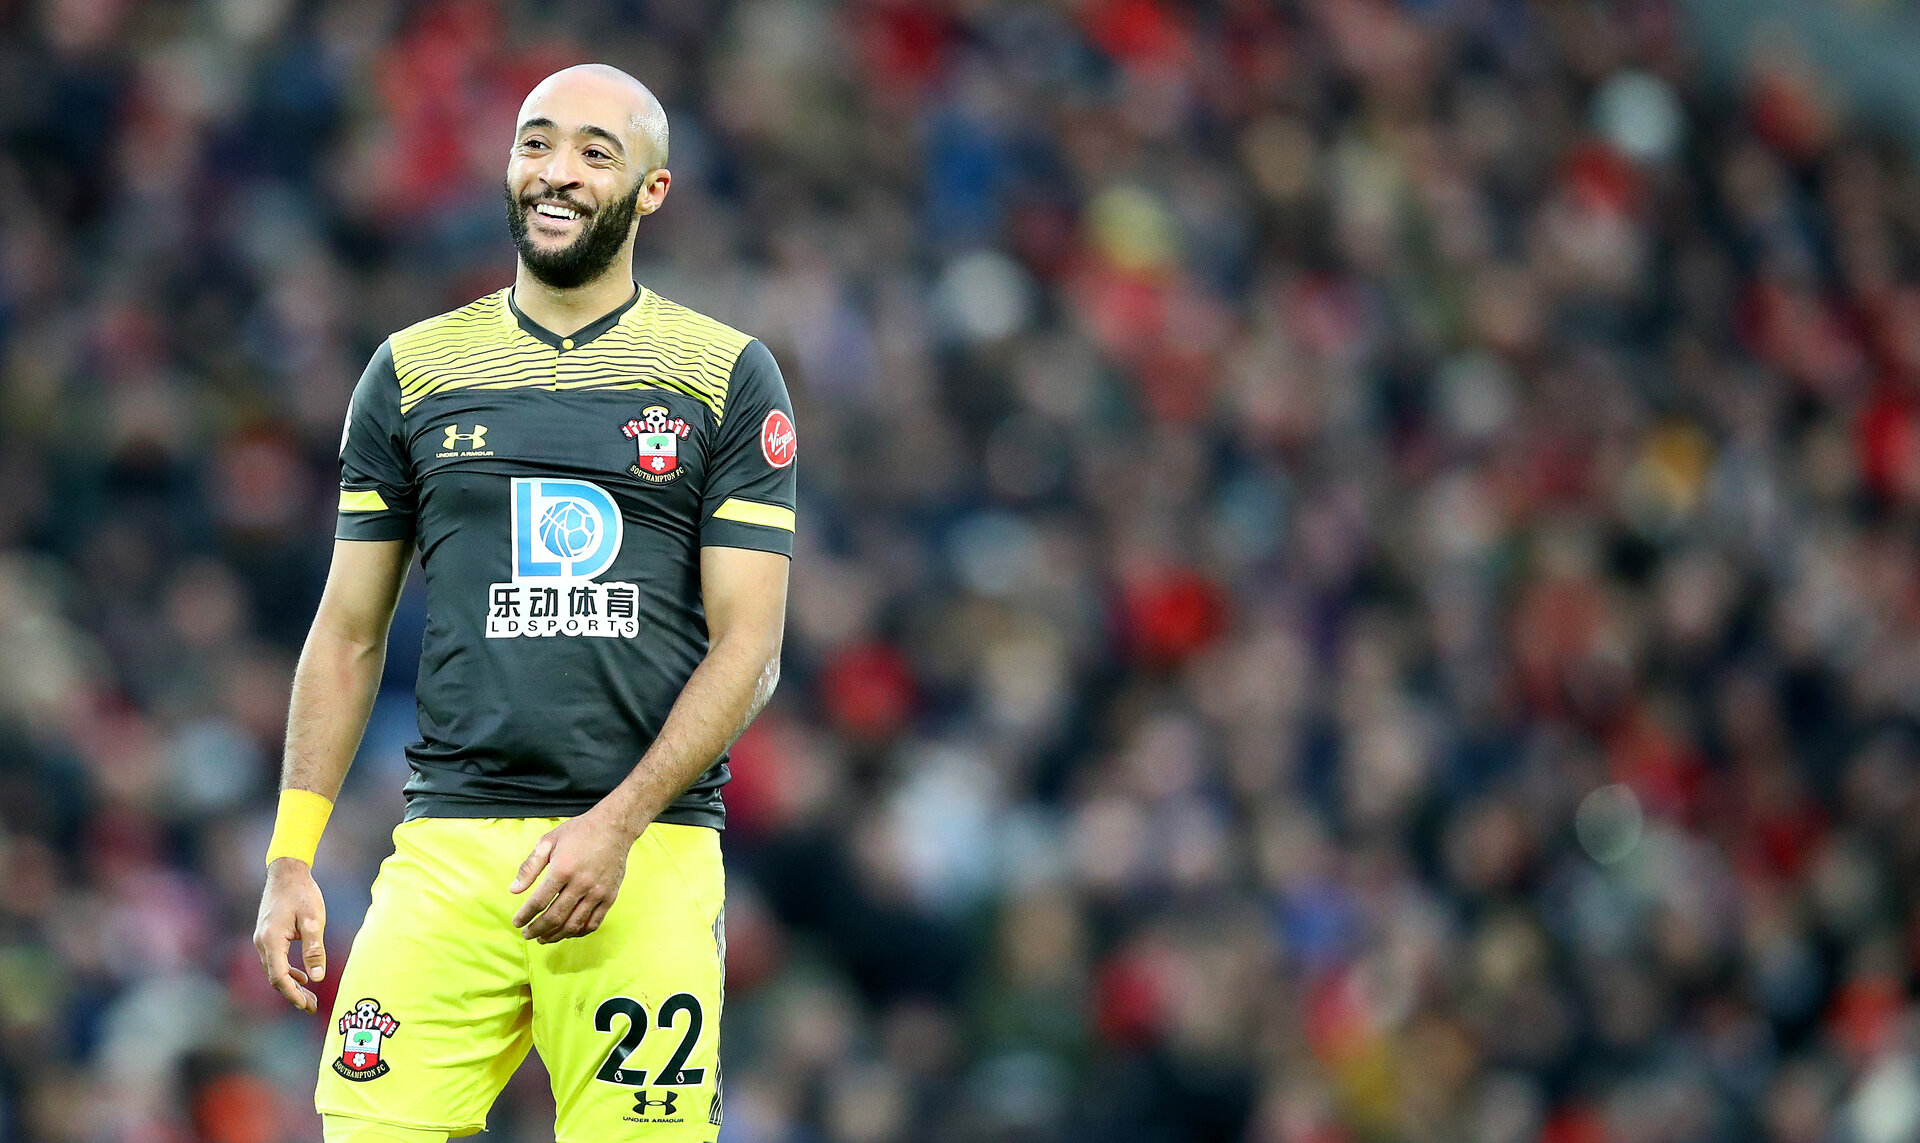 LIVERPOOL, ENGLAND - FEBRUARY 01: Nathan Redmond of Southampton during the Premier League match between Liverpool FC and Southampton FC at Anfield on February 01, 2020 in Liverpool, United Kingdom. (Photo by Matt Watson/Southampton FC via Getty Images)